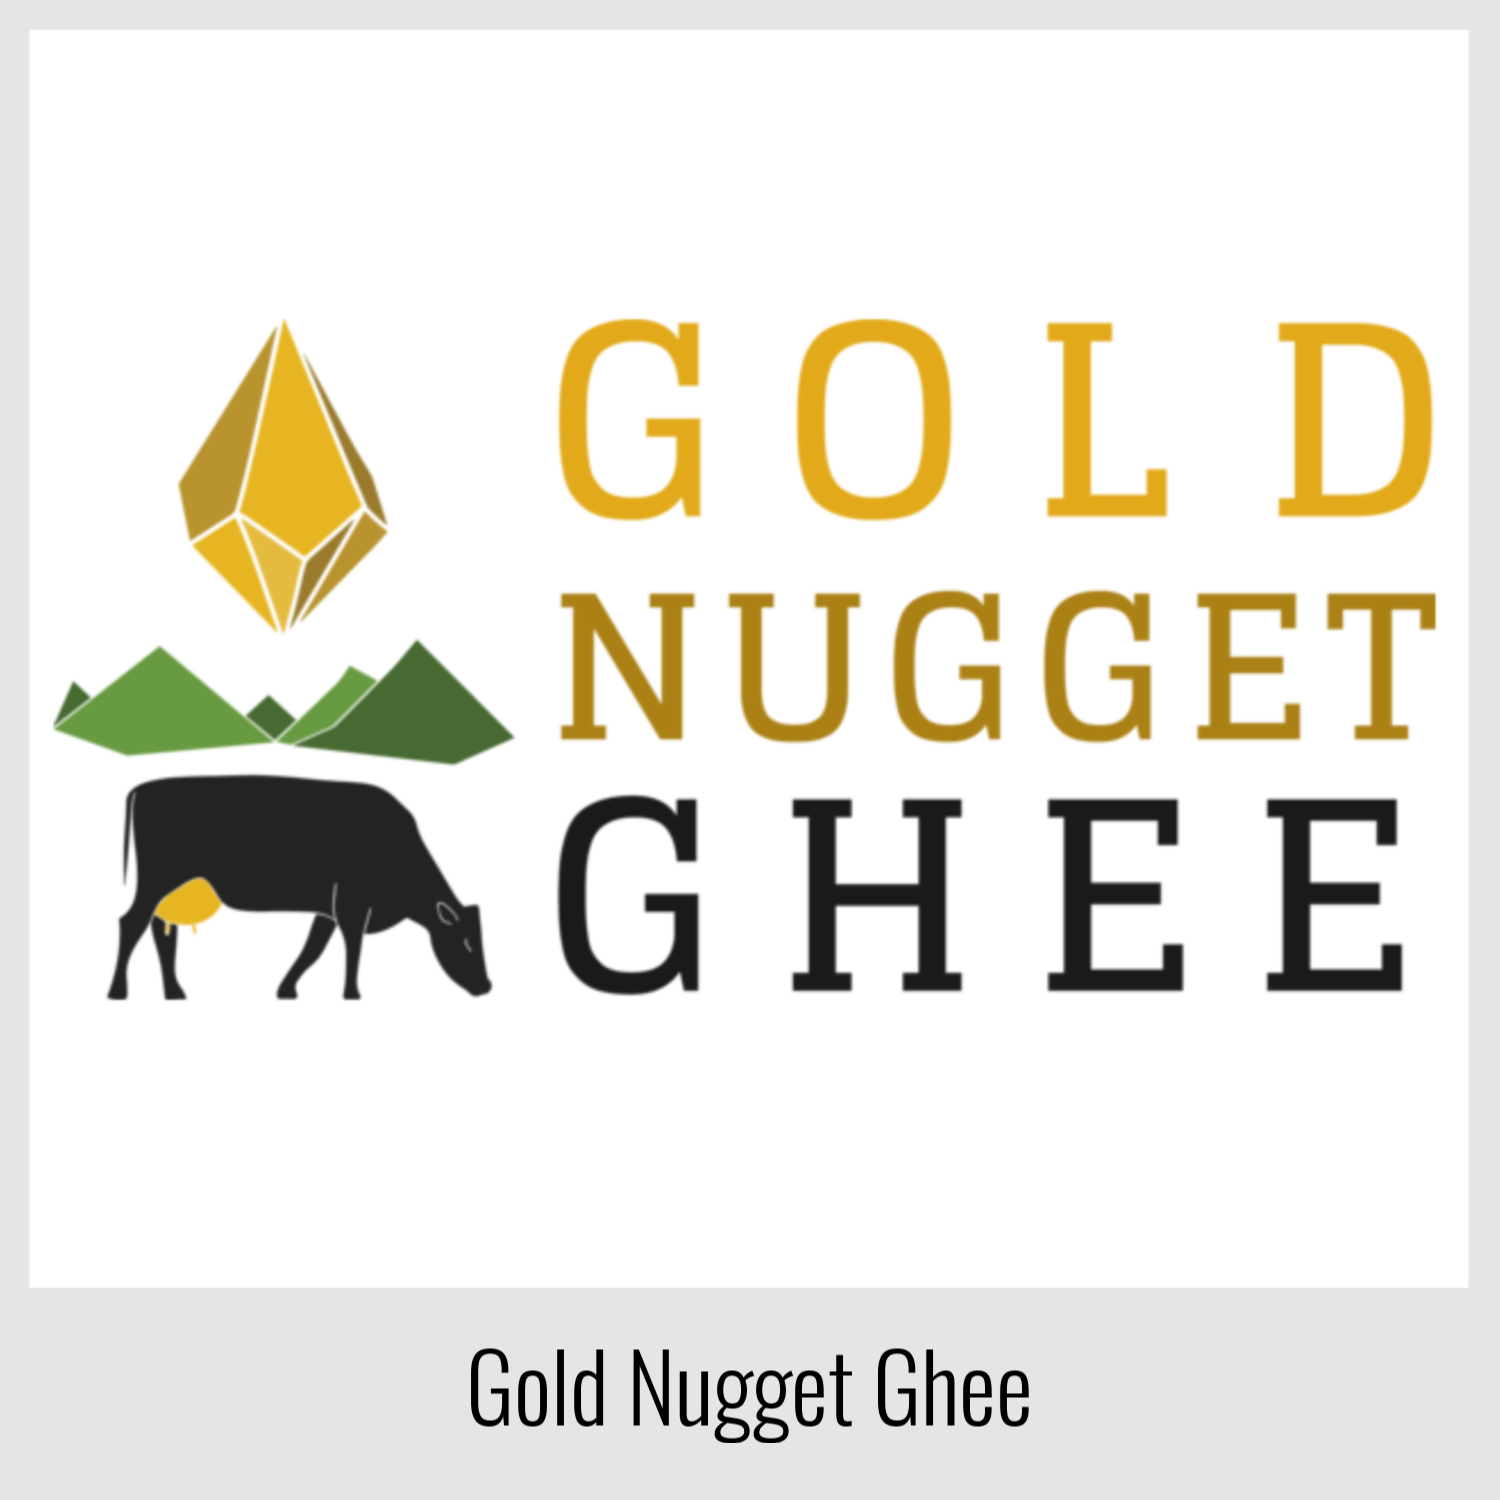 gold nugget ghee.png